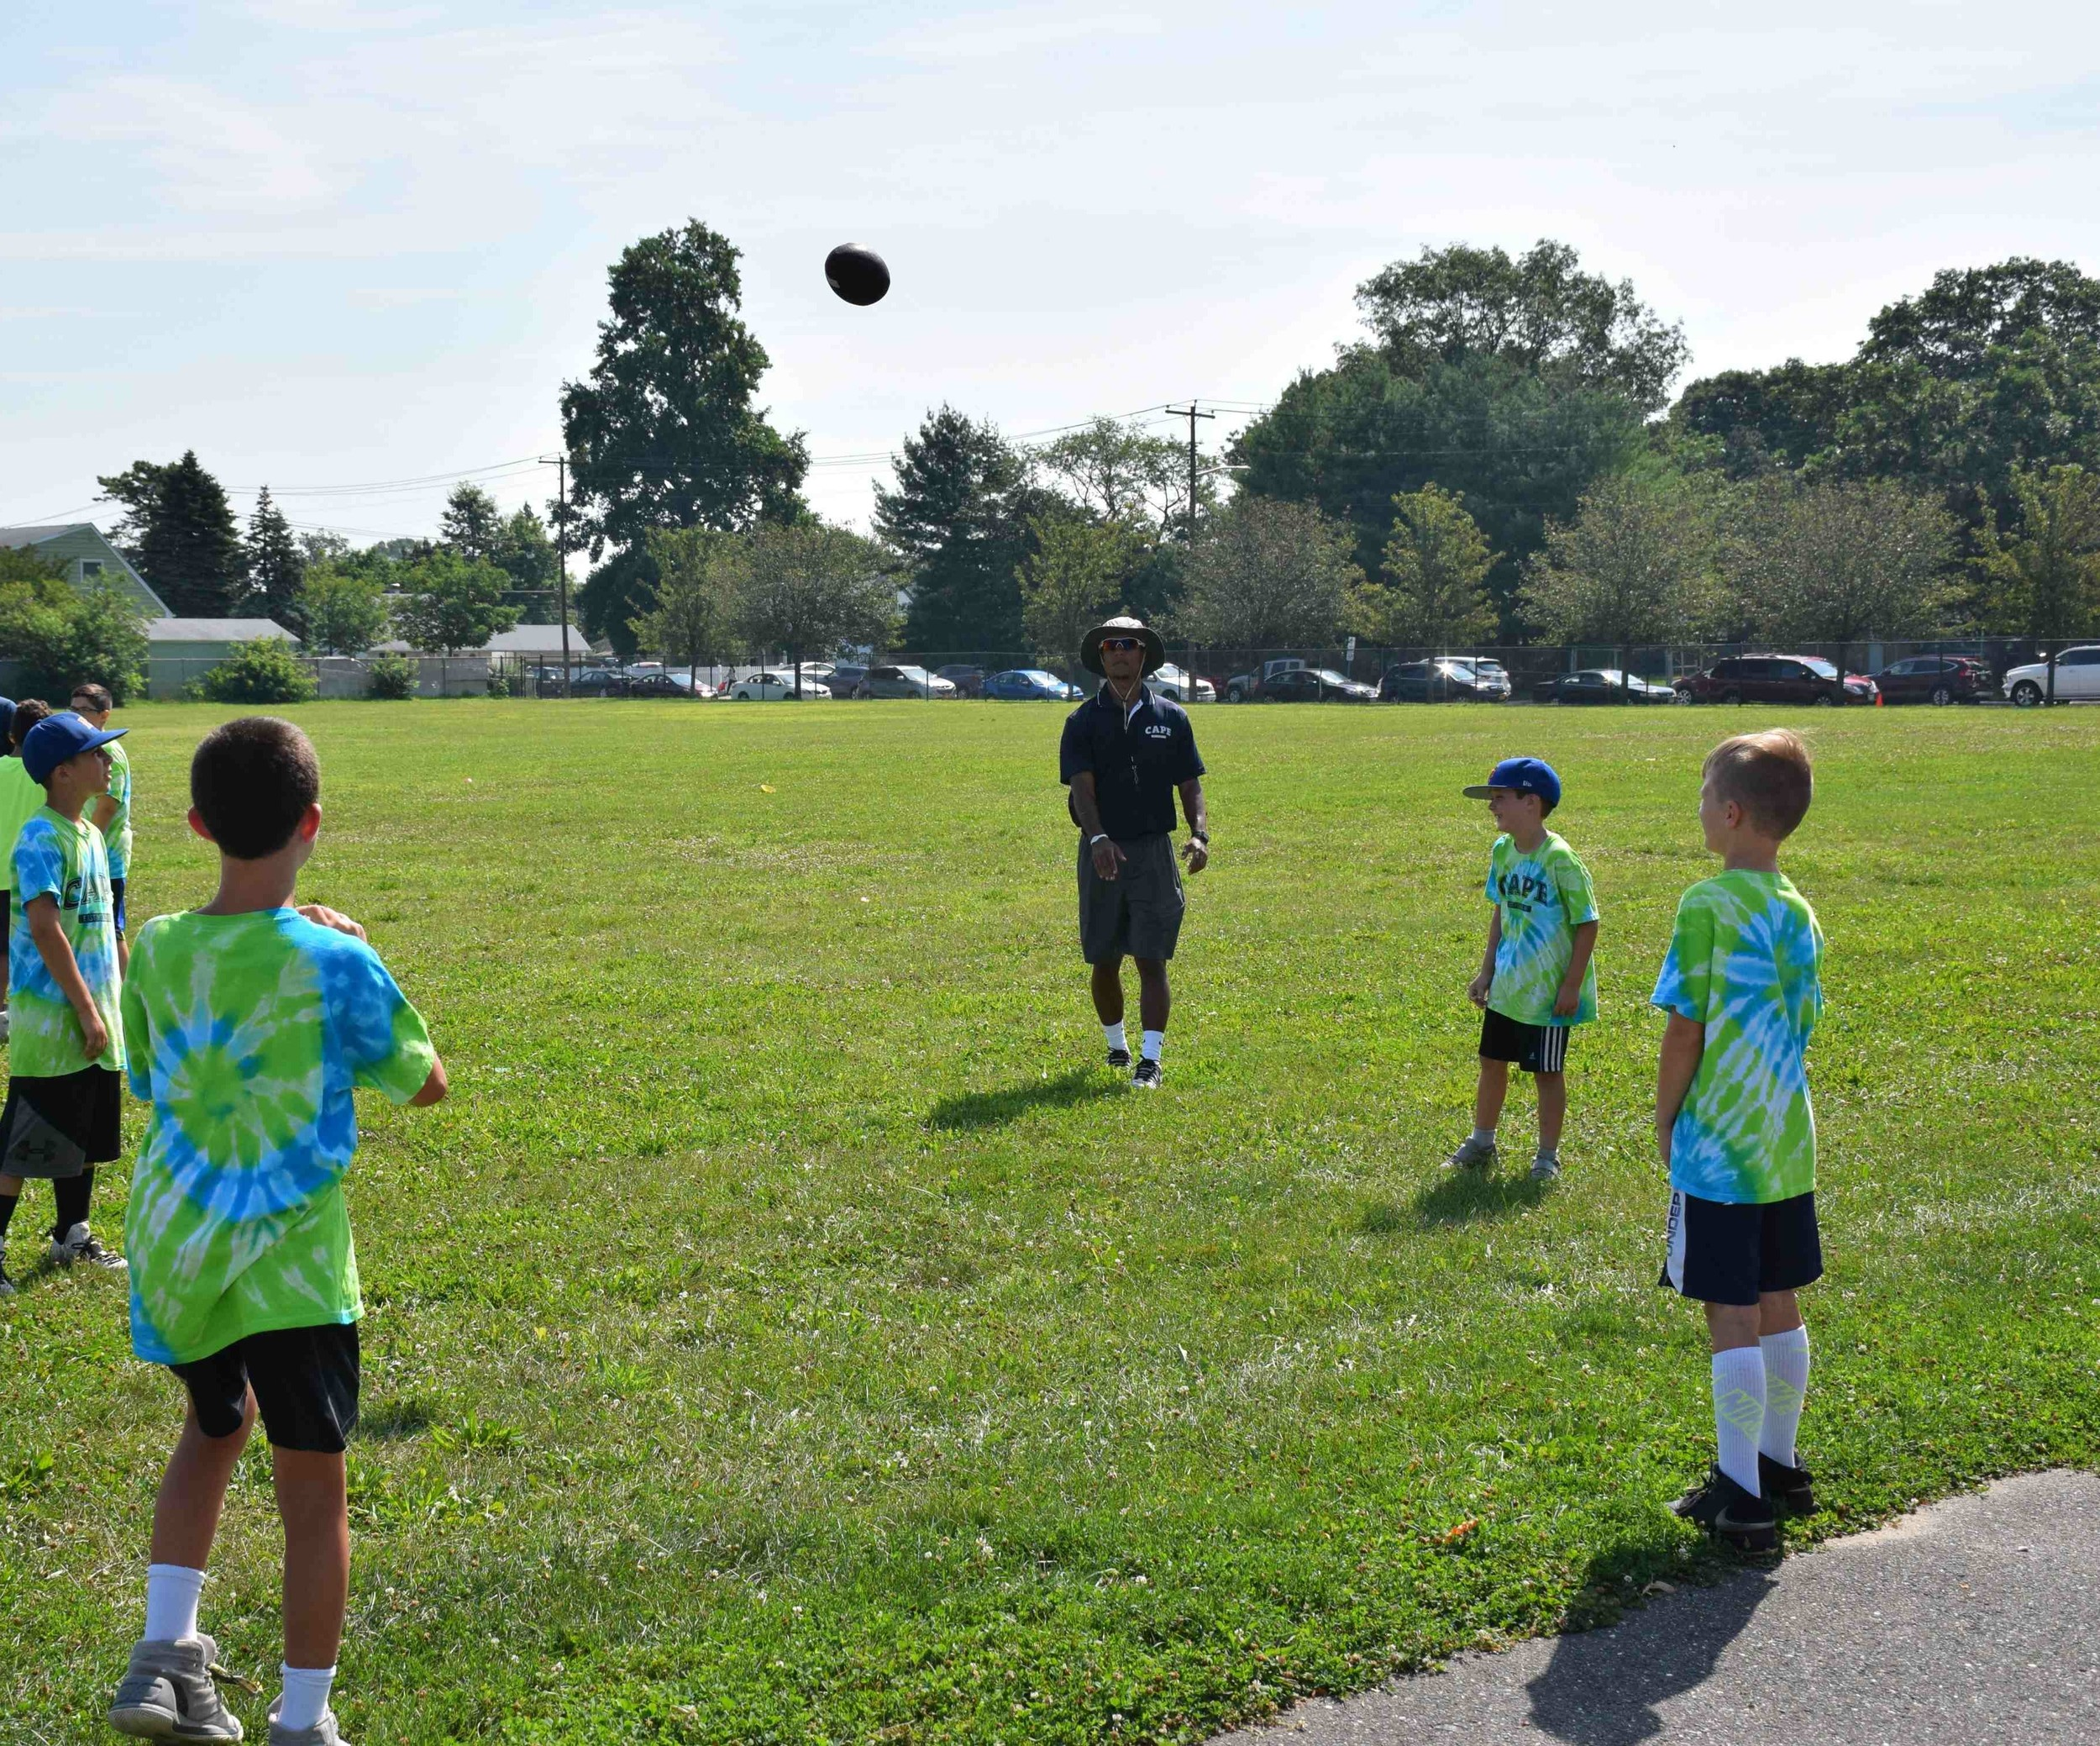 Students in the Creative Arts Program of East Meadow tossed around a football before their flag football game, one of the activities offered through the district's summer recreation program.